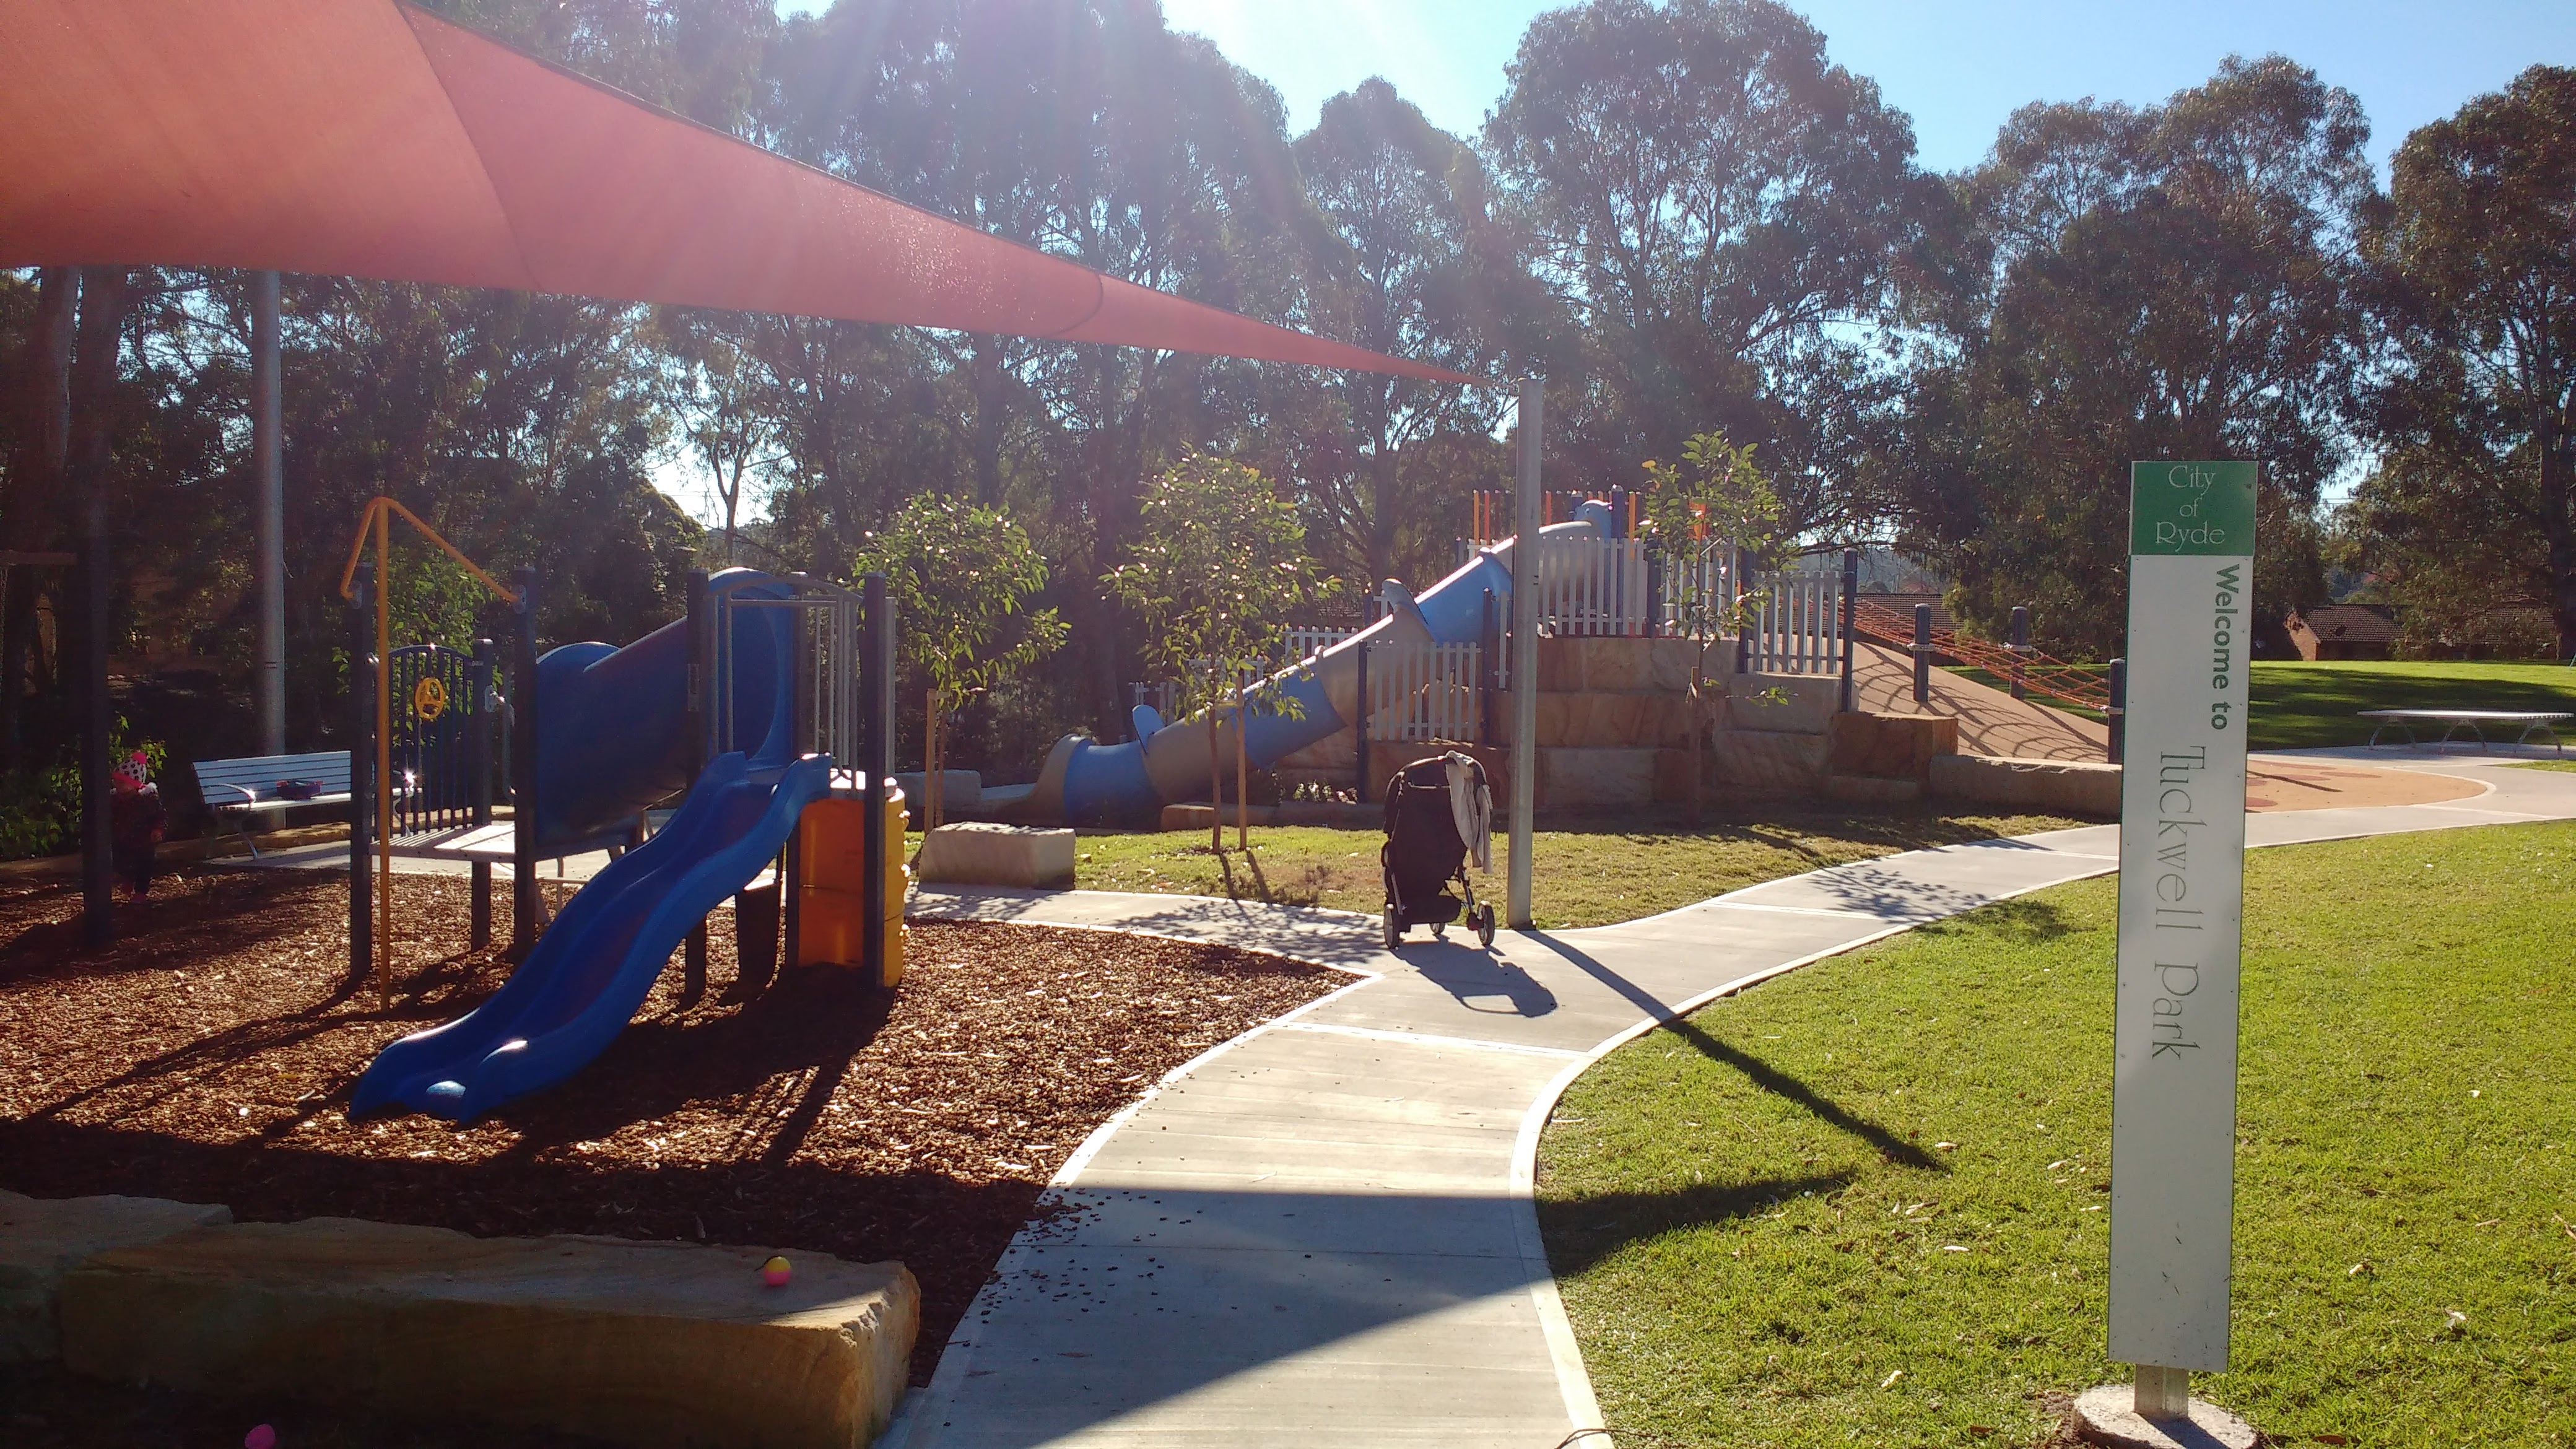 Tuckwell Park Playground Review